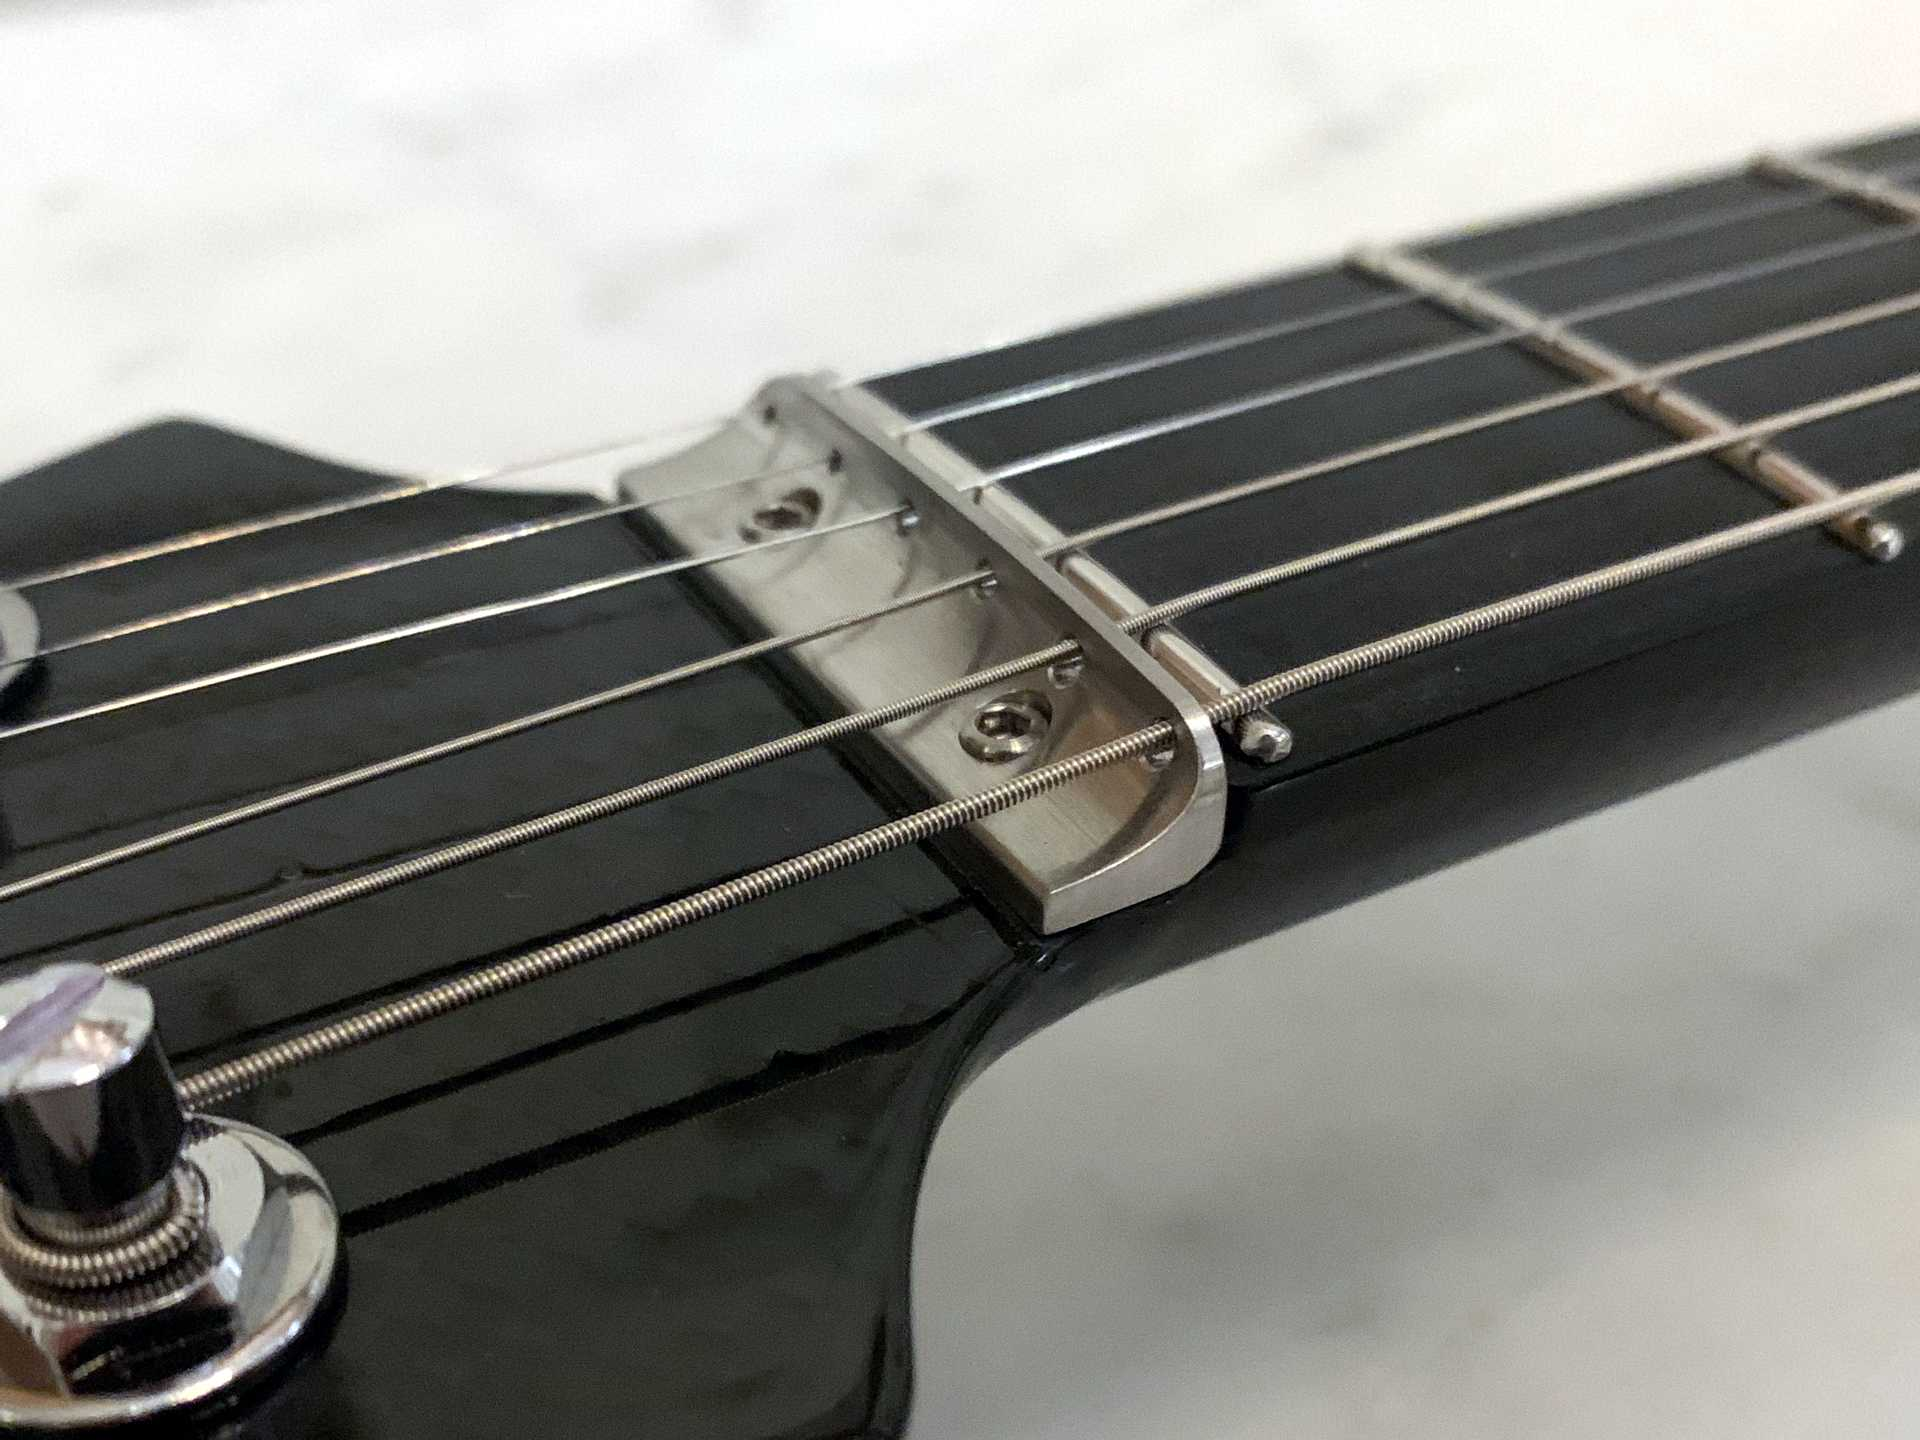 Stainless steel string guide